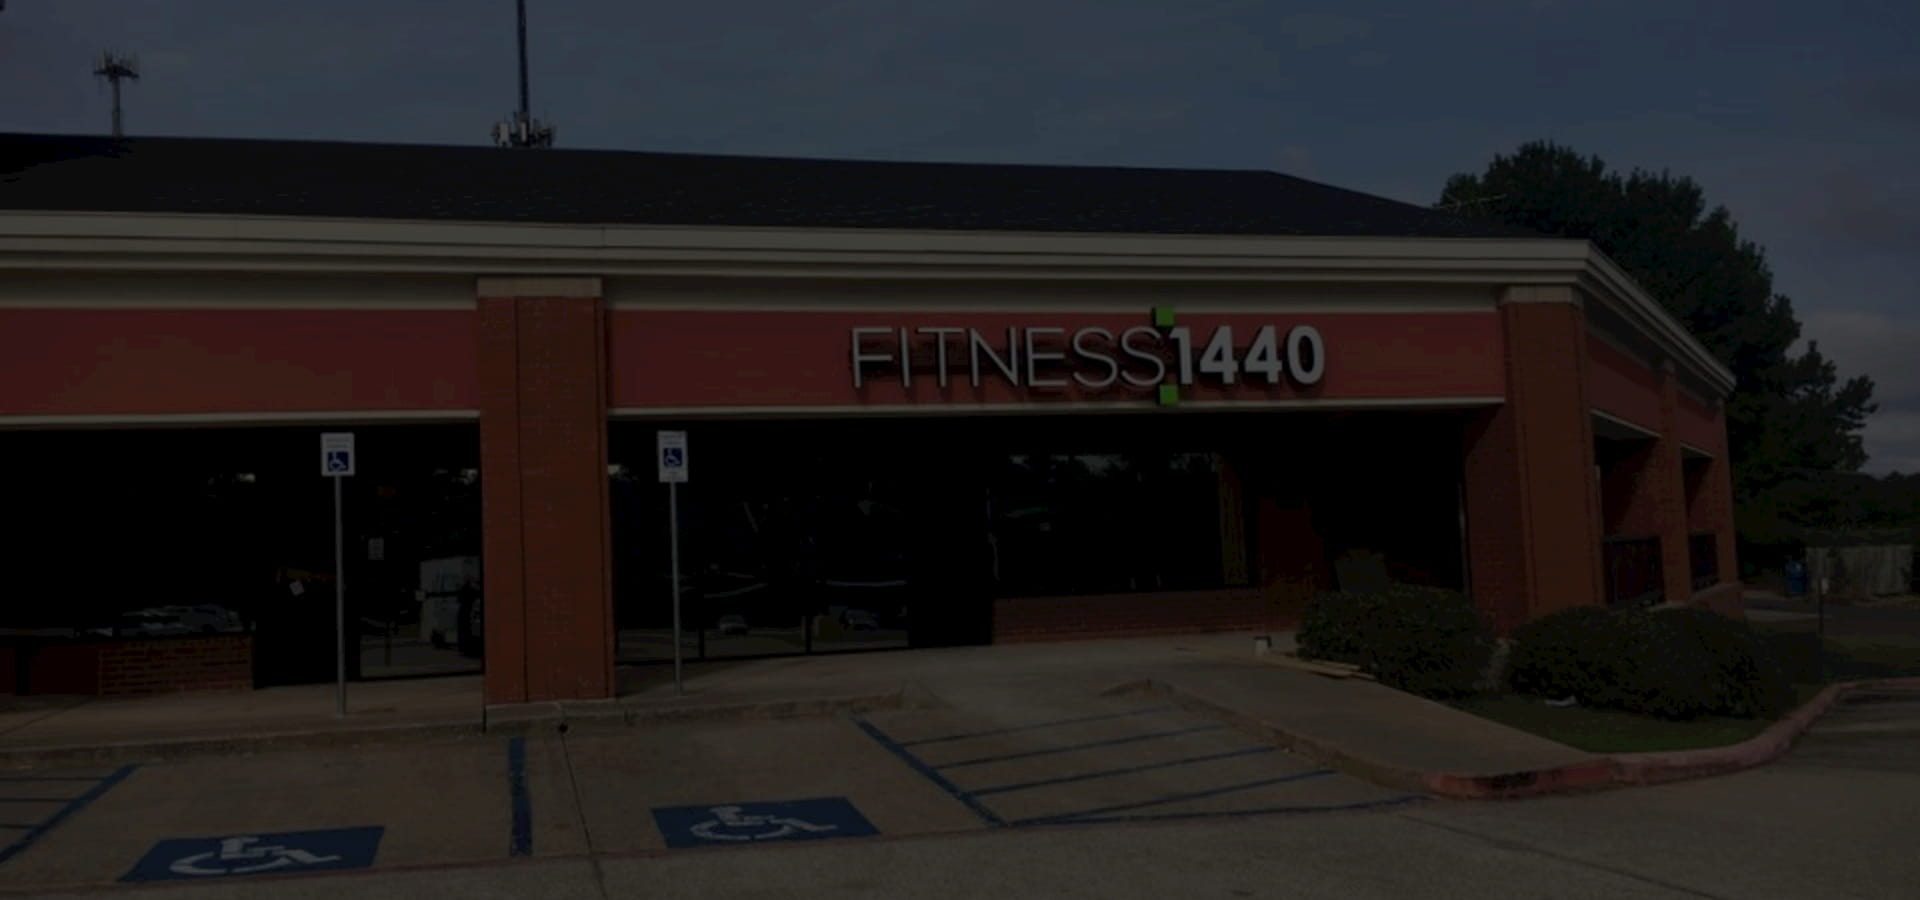 Wildts Wiring has worked with Fitness 1440!